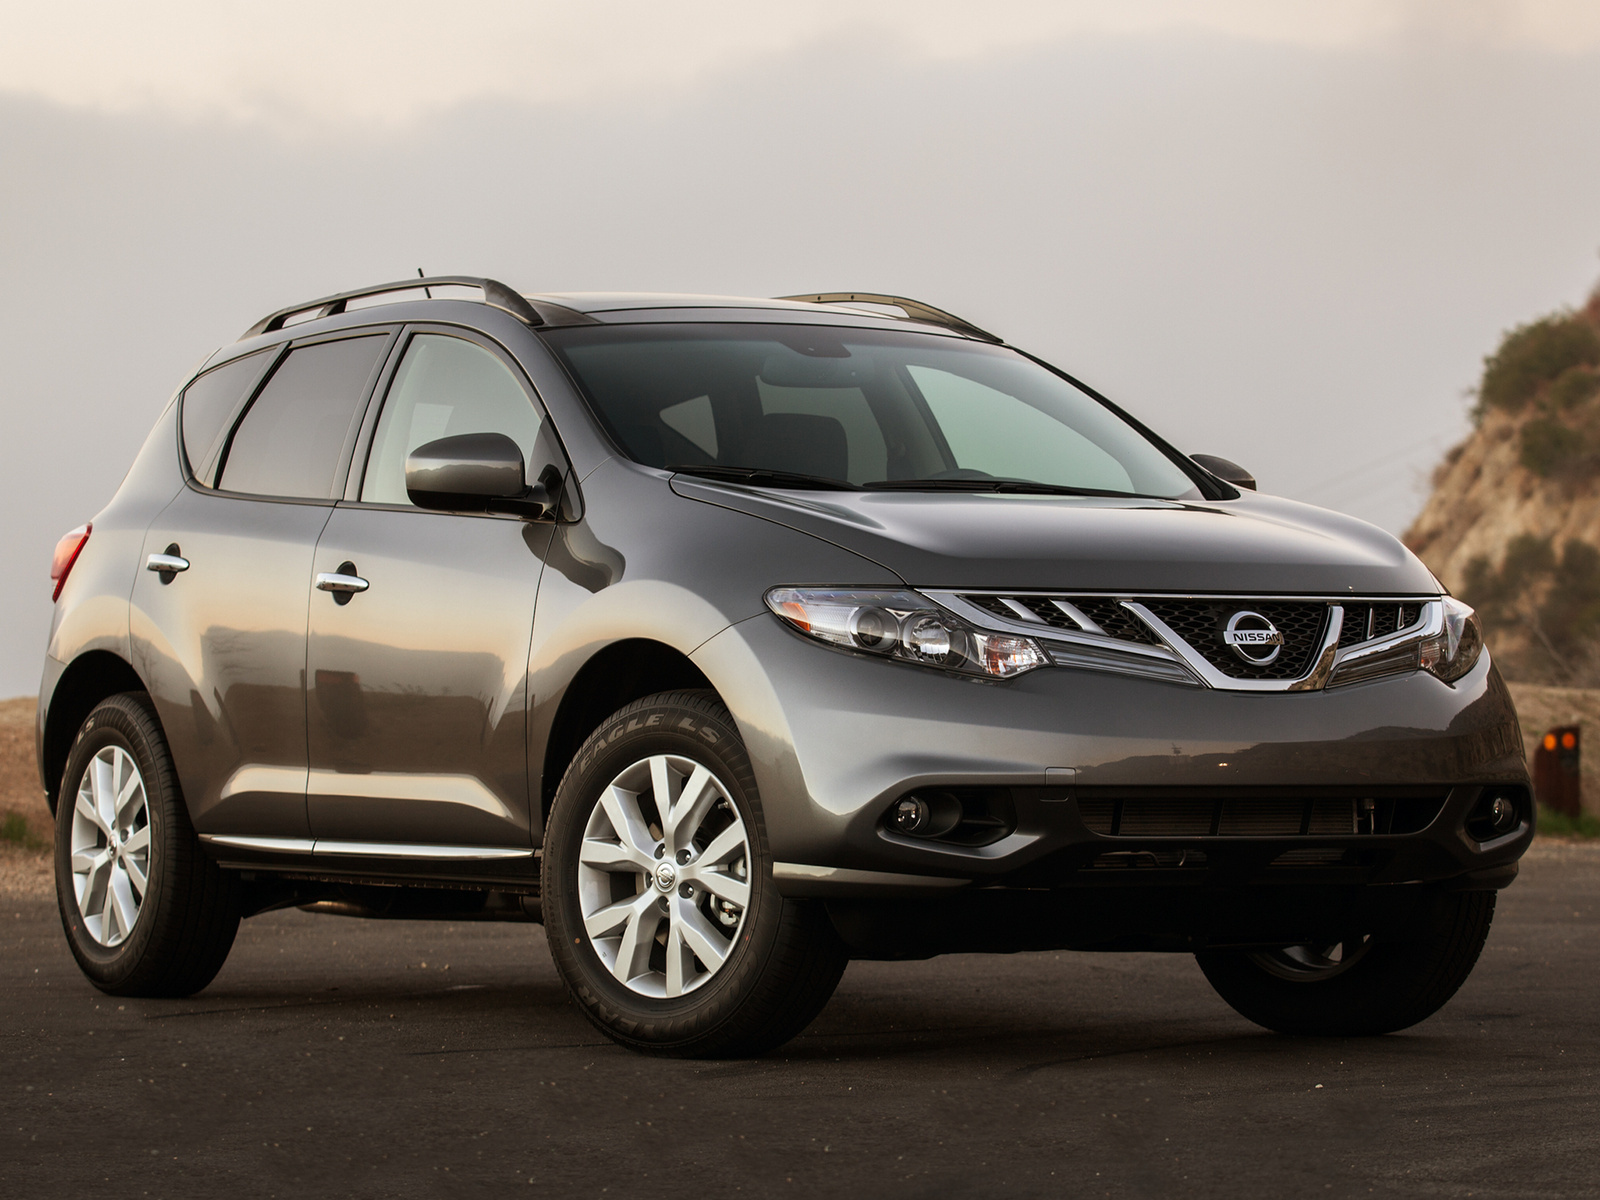 unchanged news murano suv pricing engine s fwd nissan at